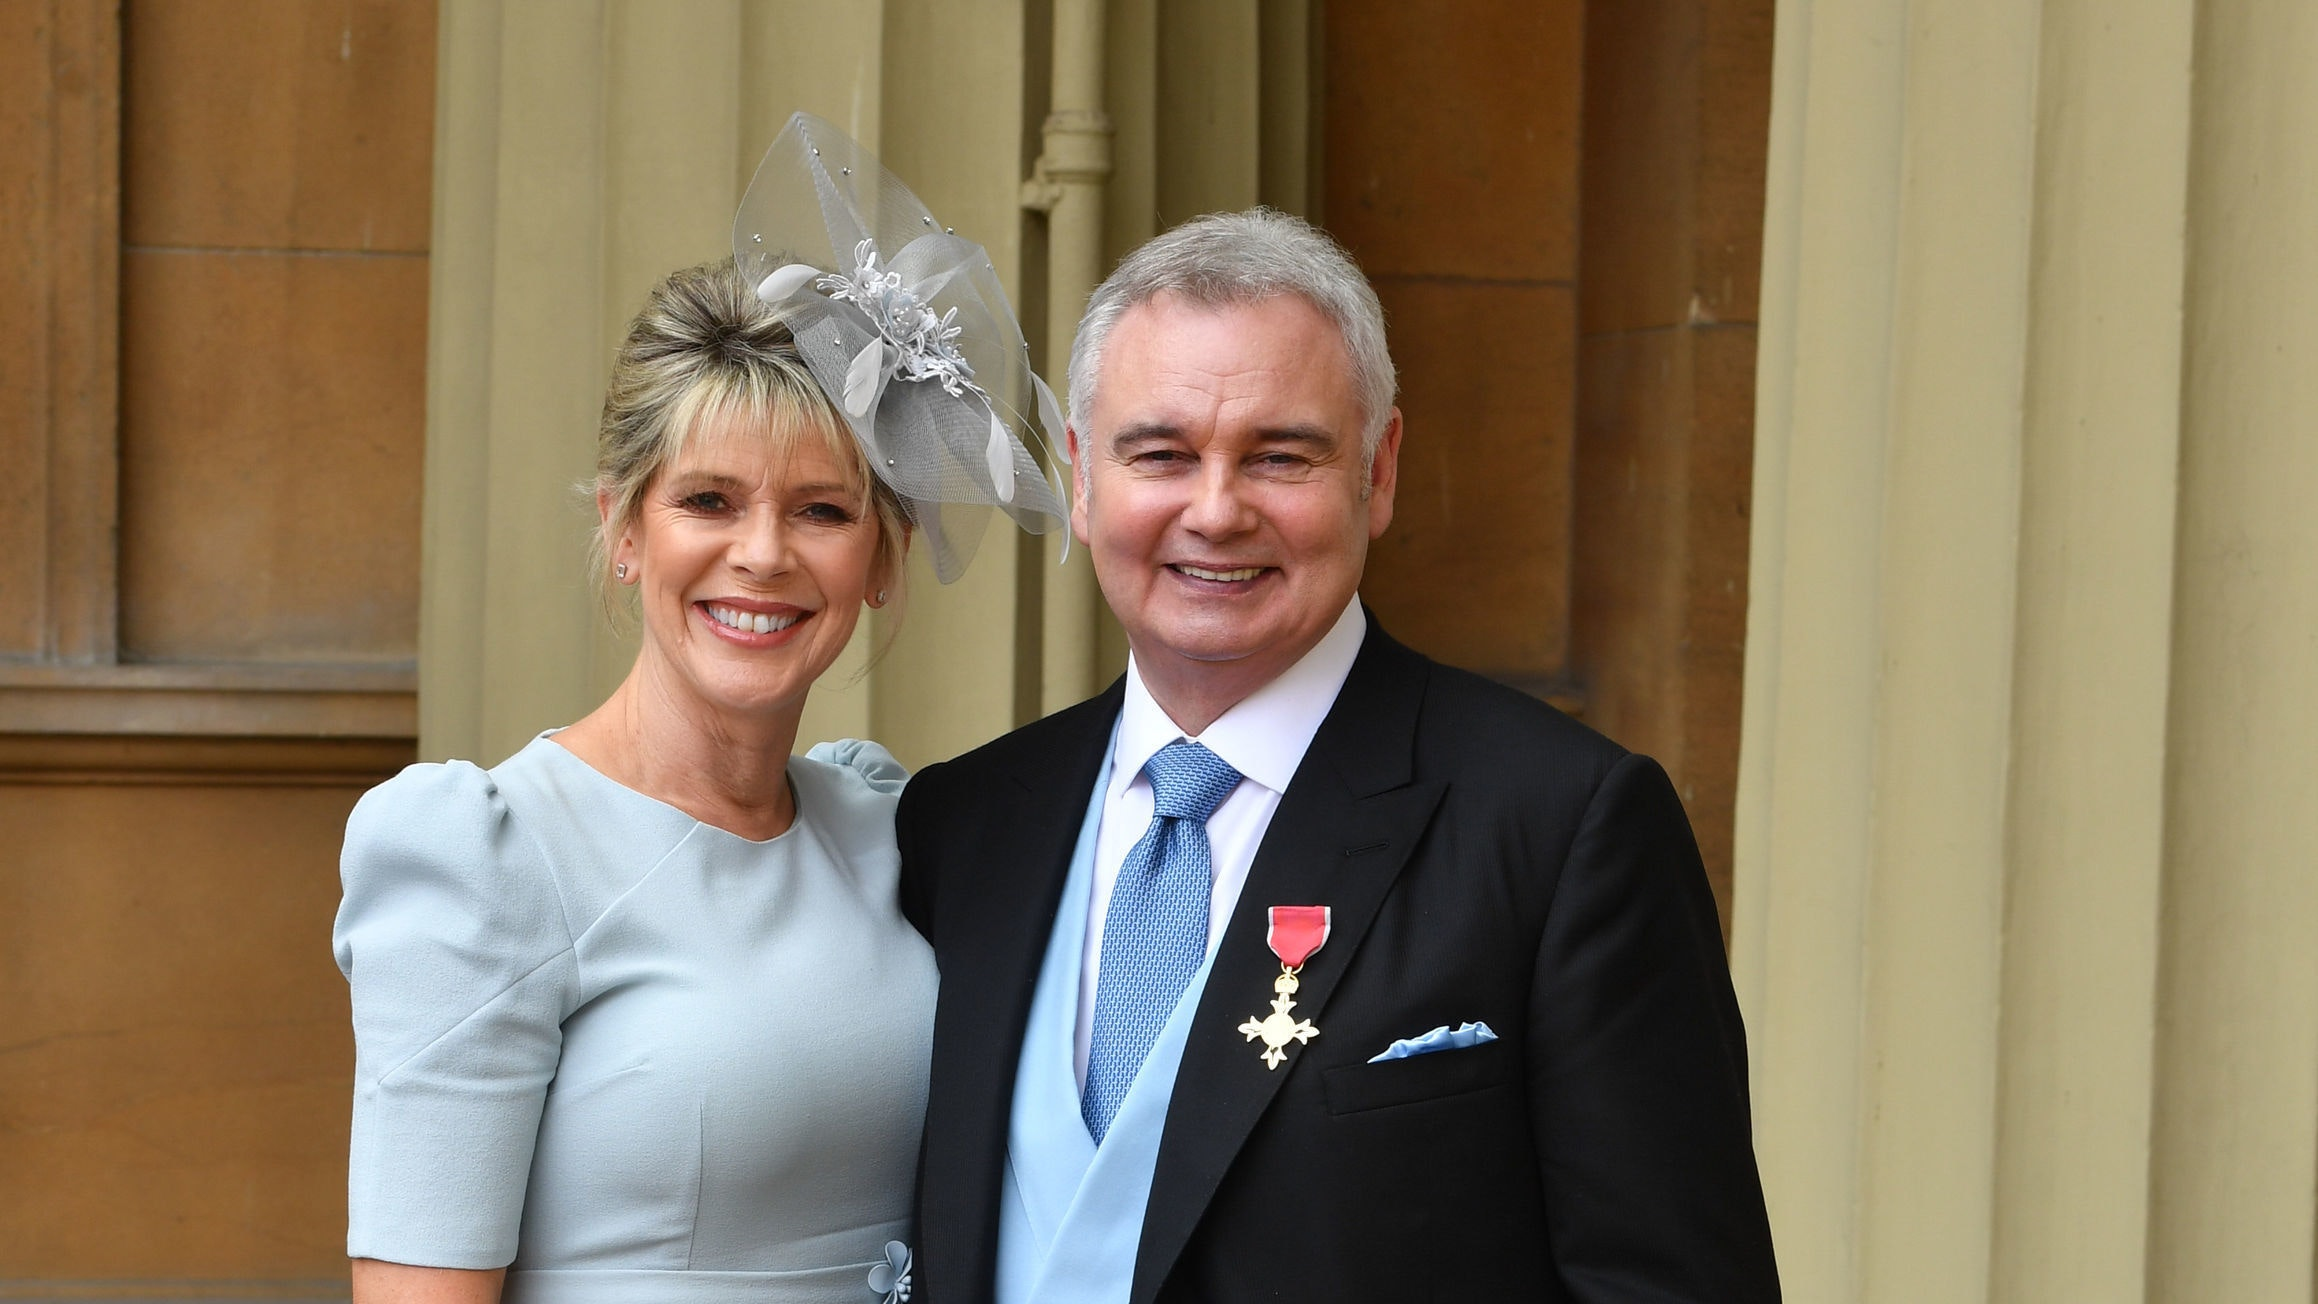 Eamonn Holmes and Ruth Langsford's show found to have breached TV rules with this move